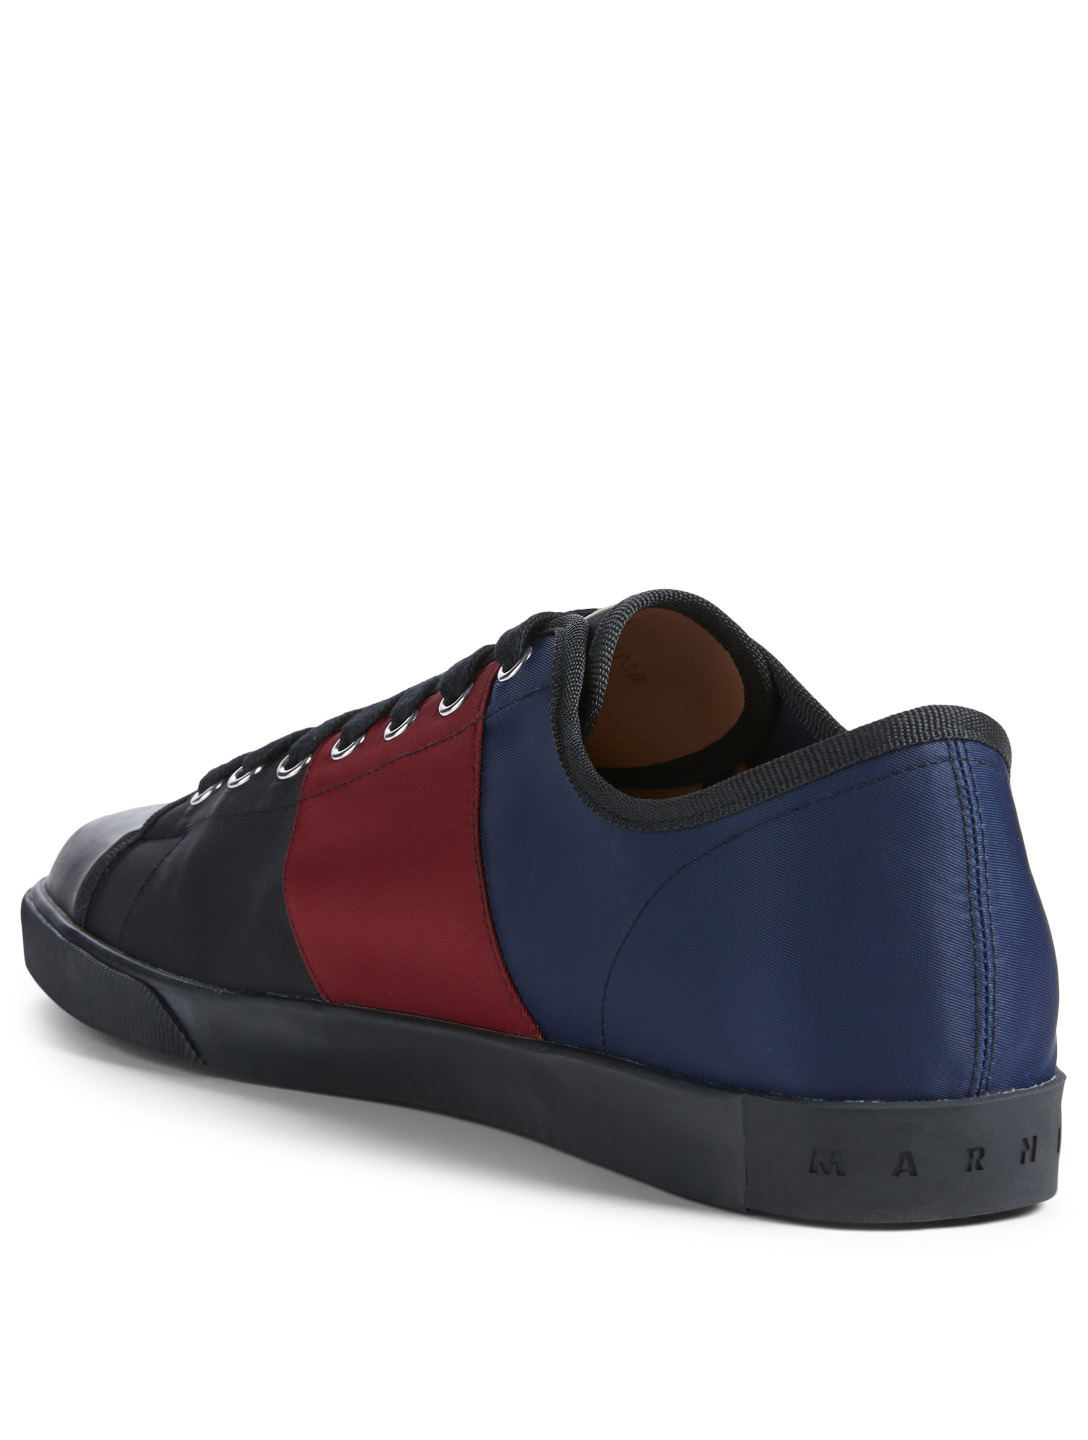 MARNI Tech Jersey Sneakers Men's Black